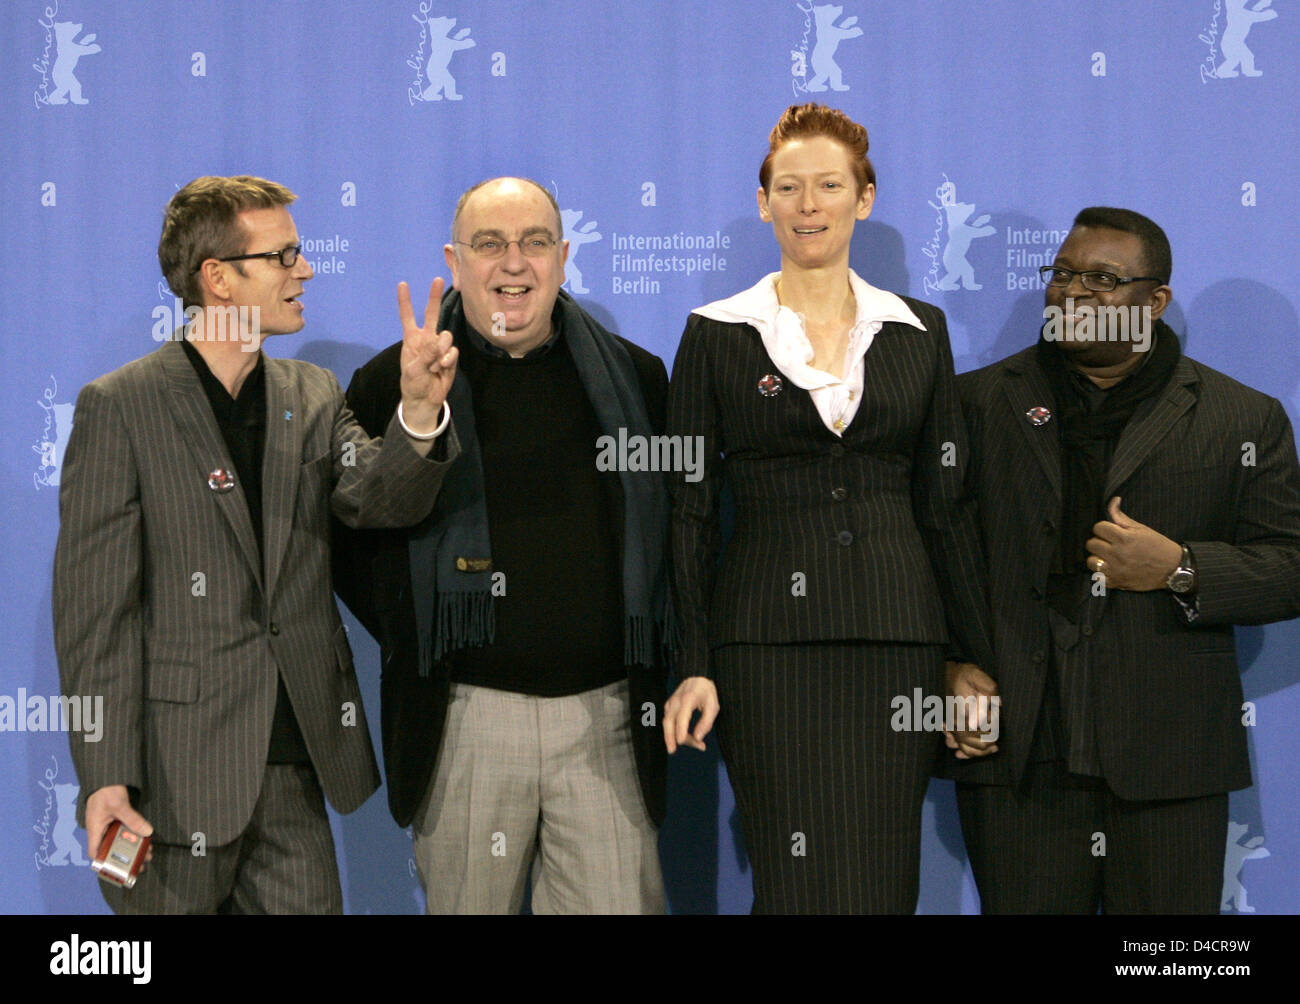 british actress tilda swinton 2 r music composer simon fisher turner l r executive producer james mackay and director isaac julien pose during the - Executive Producer Music